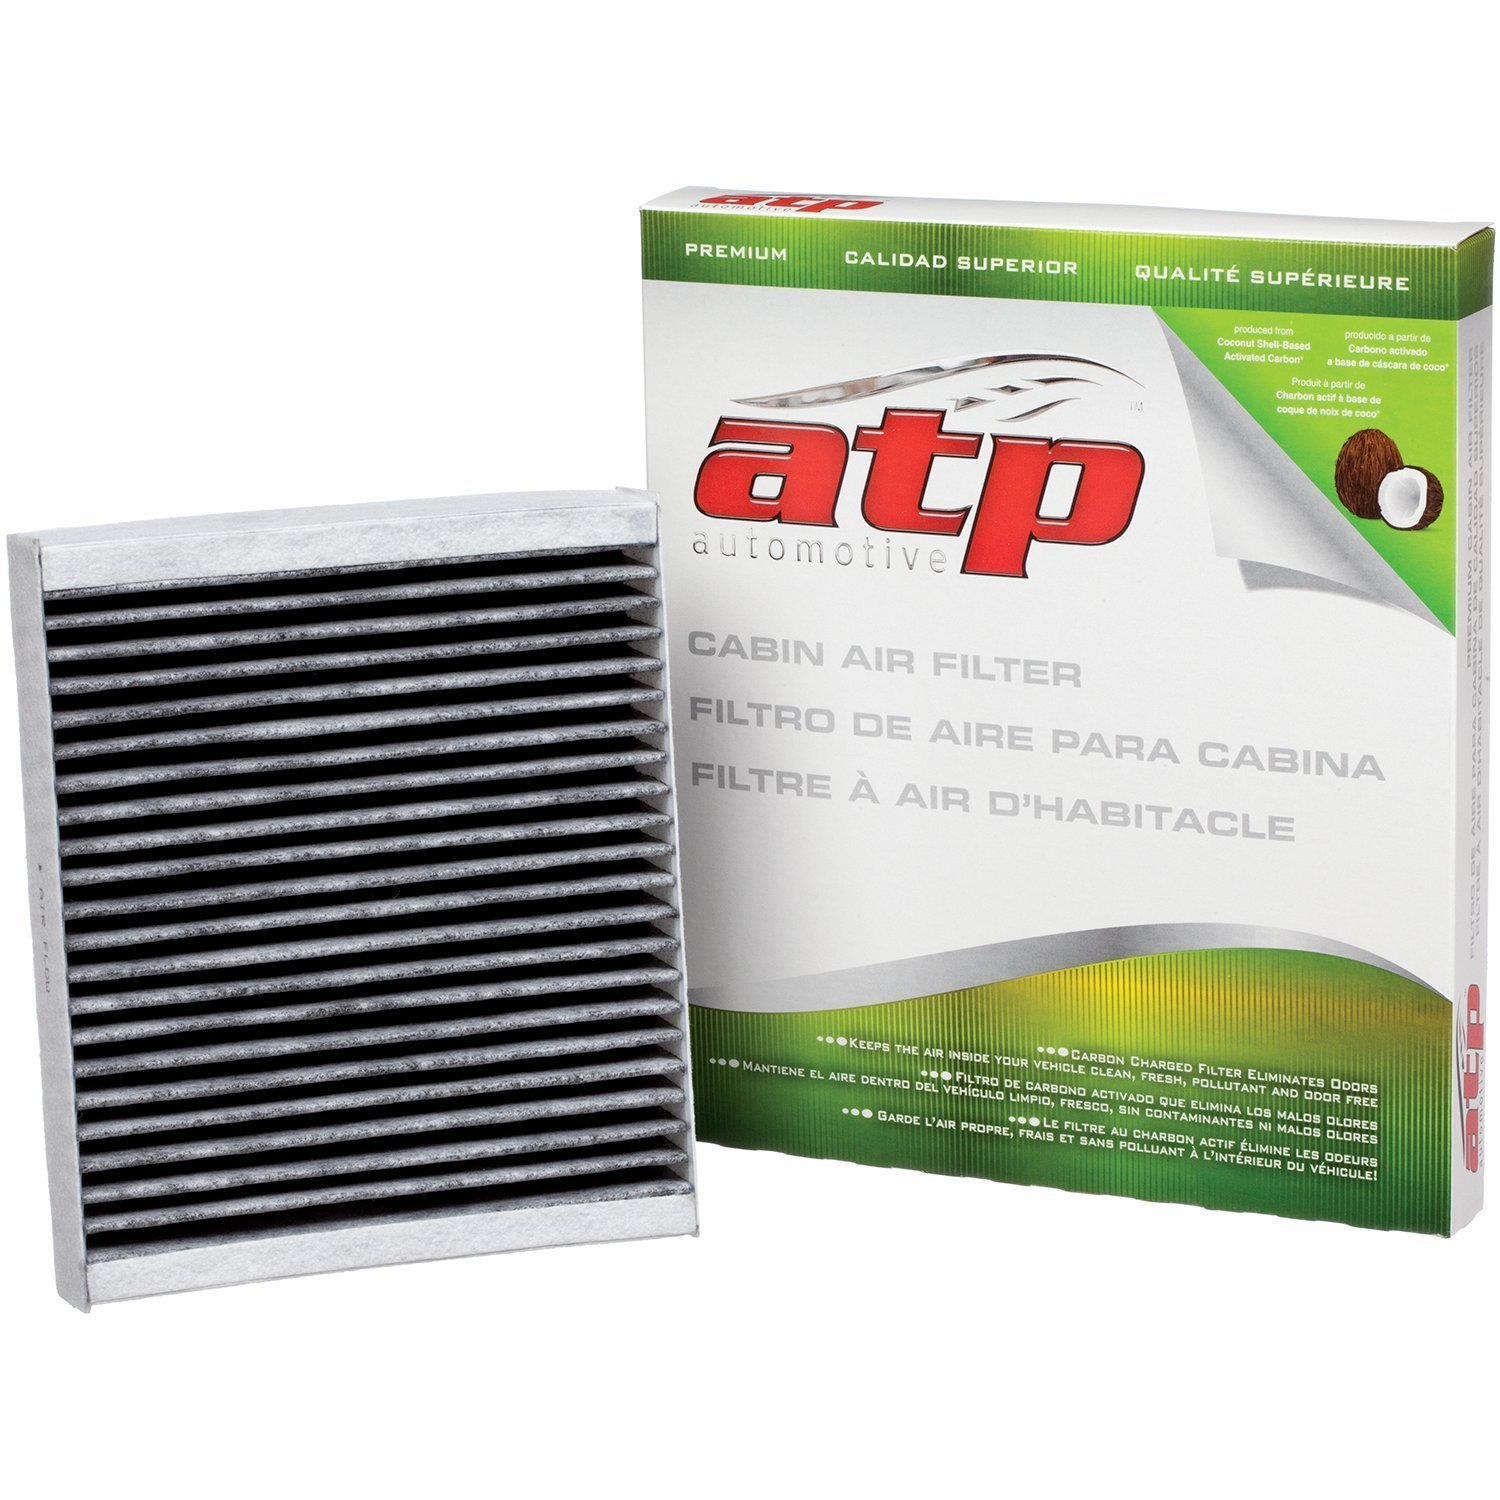 in-cabin air filter